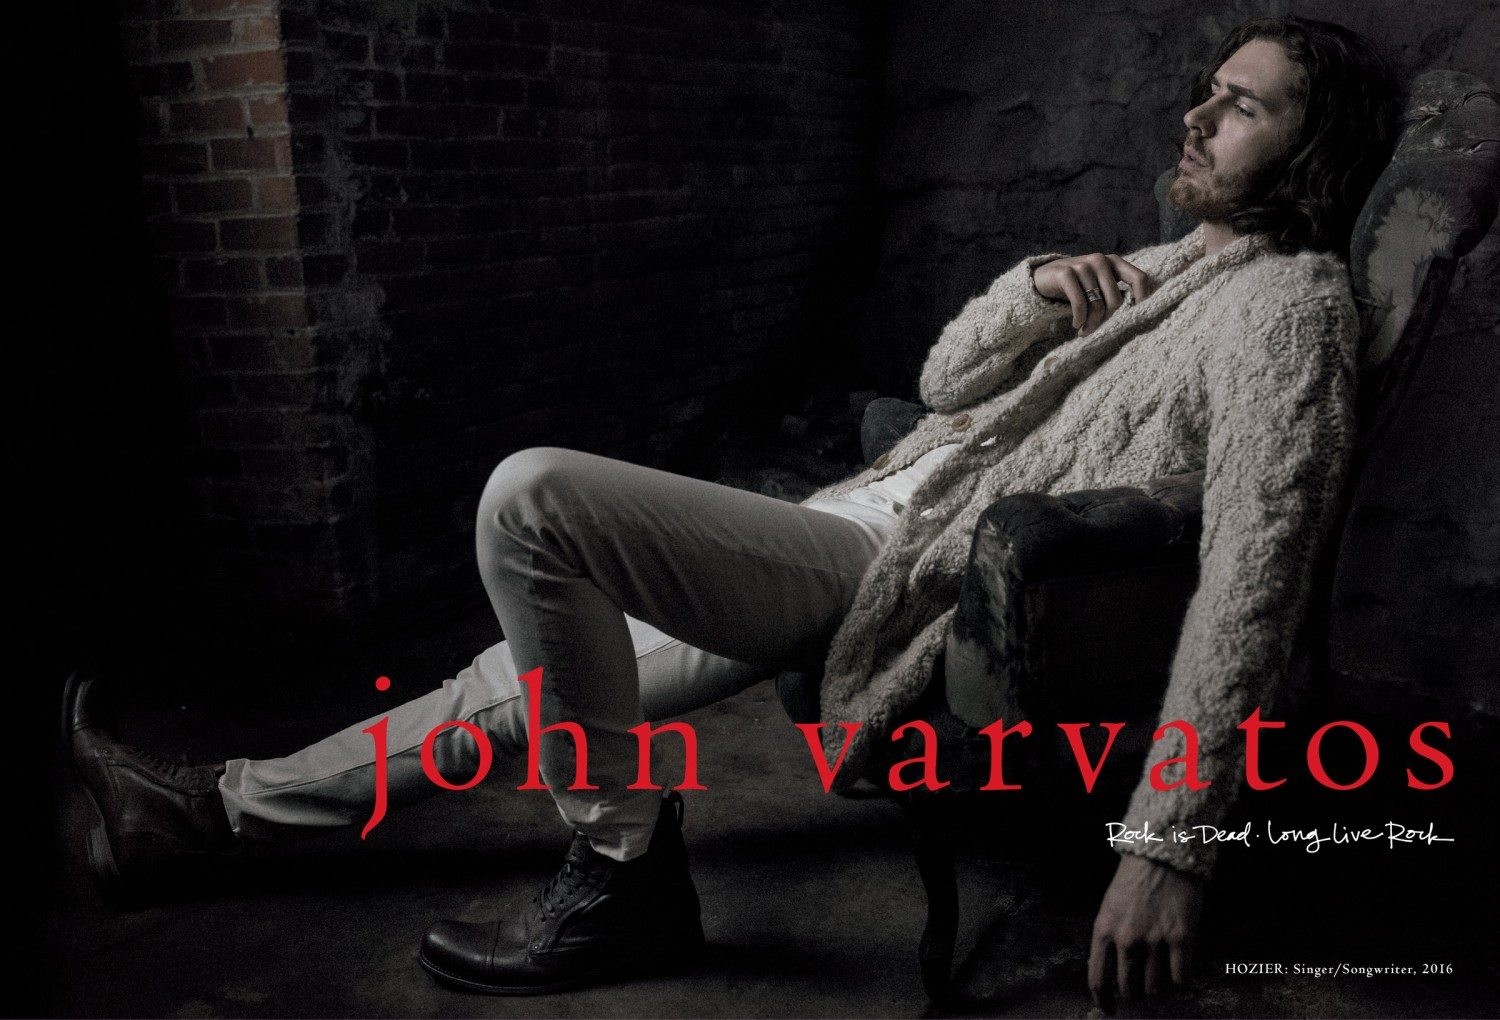 John Varvatos Announces Hozier As The Face Of Its Fall/Winter 2016 Advertising Campaign